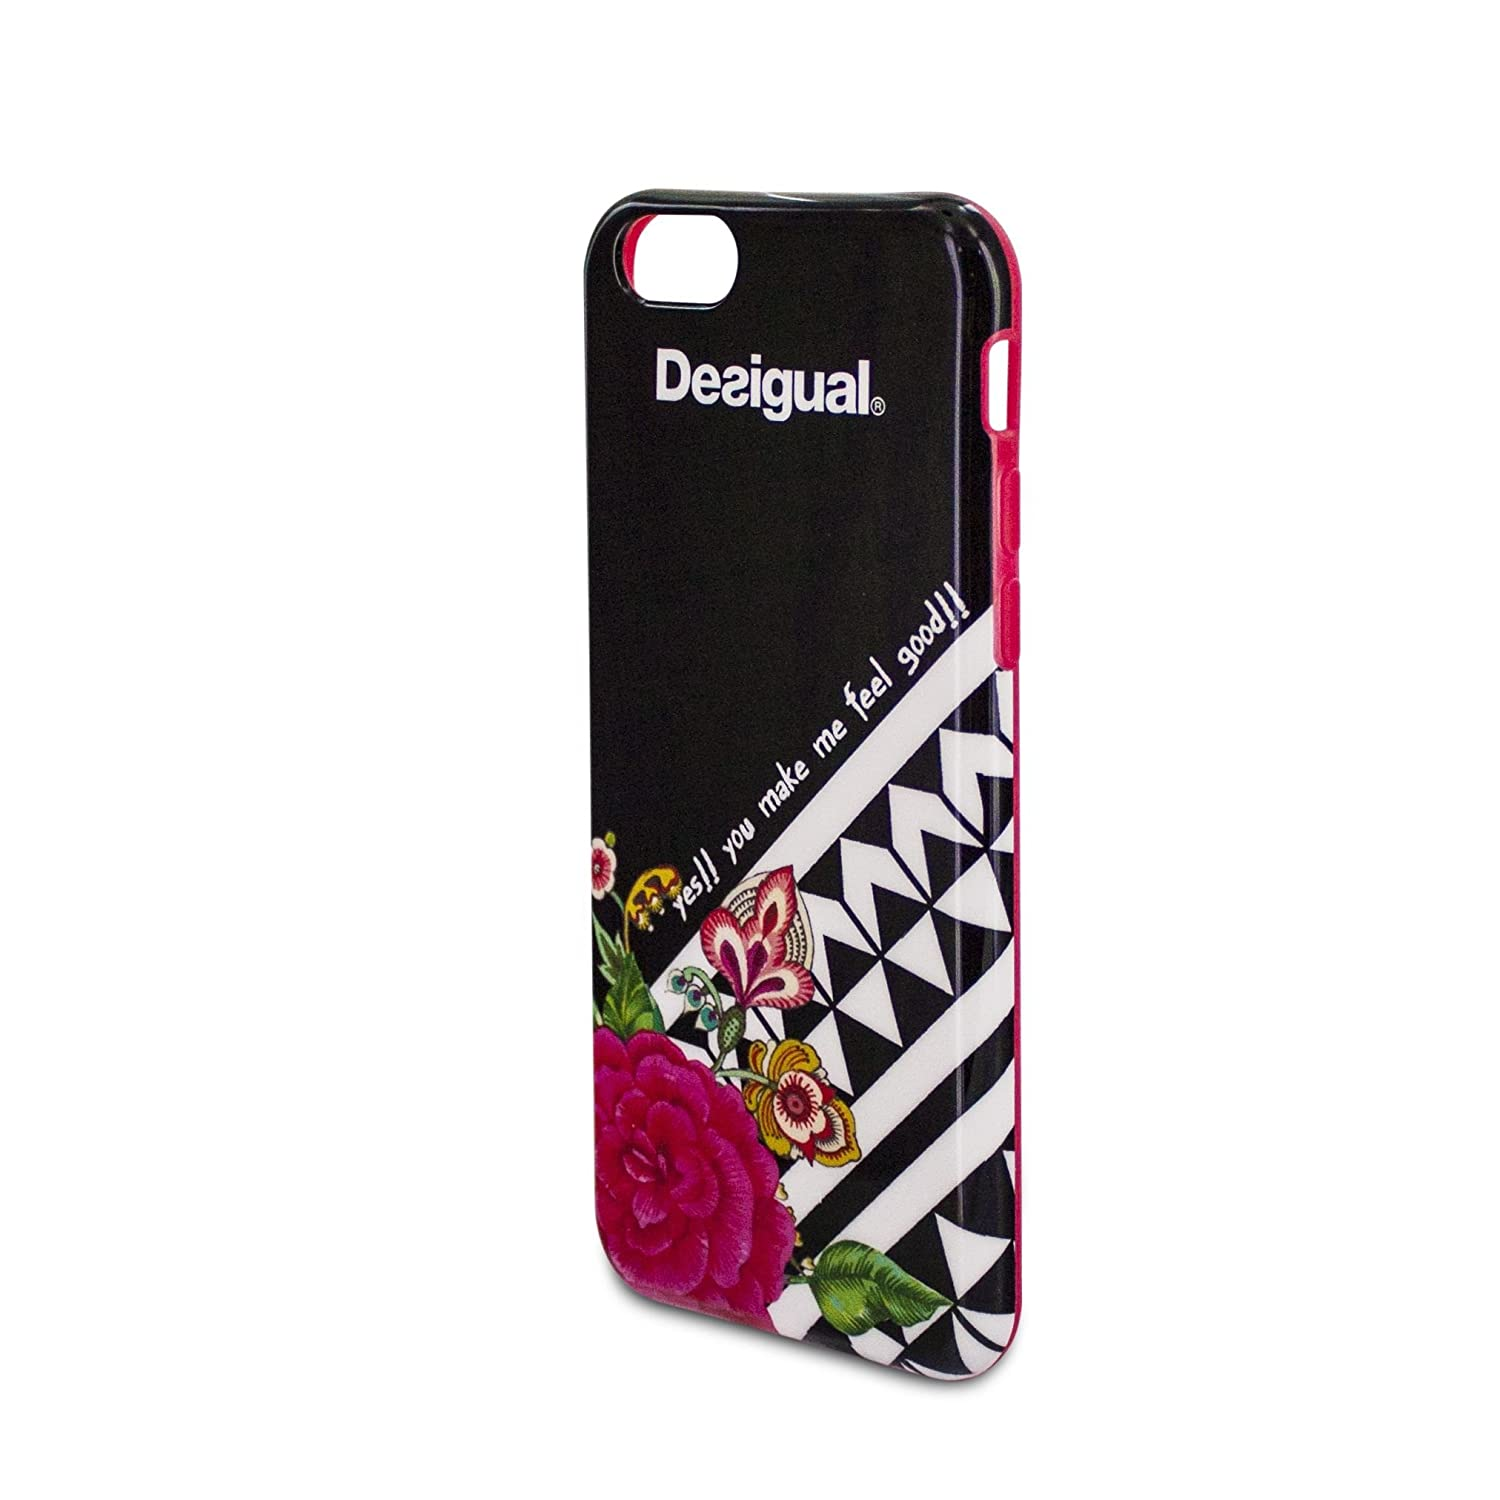 custodia iphone 5 desigual